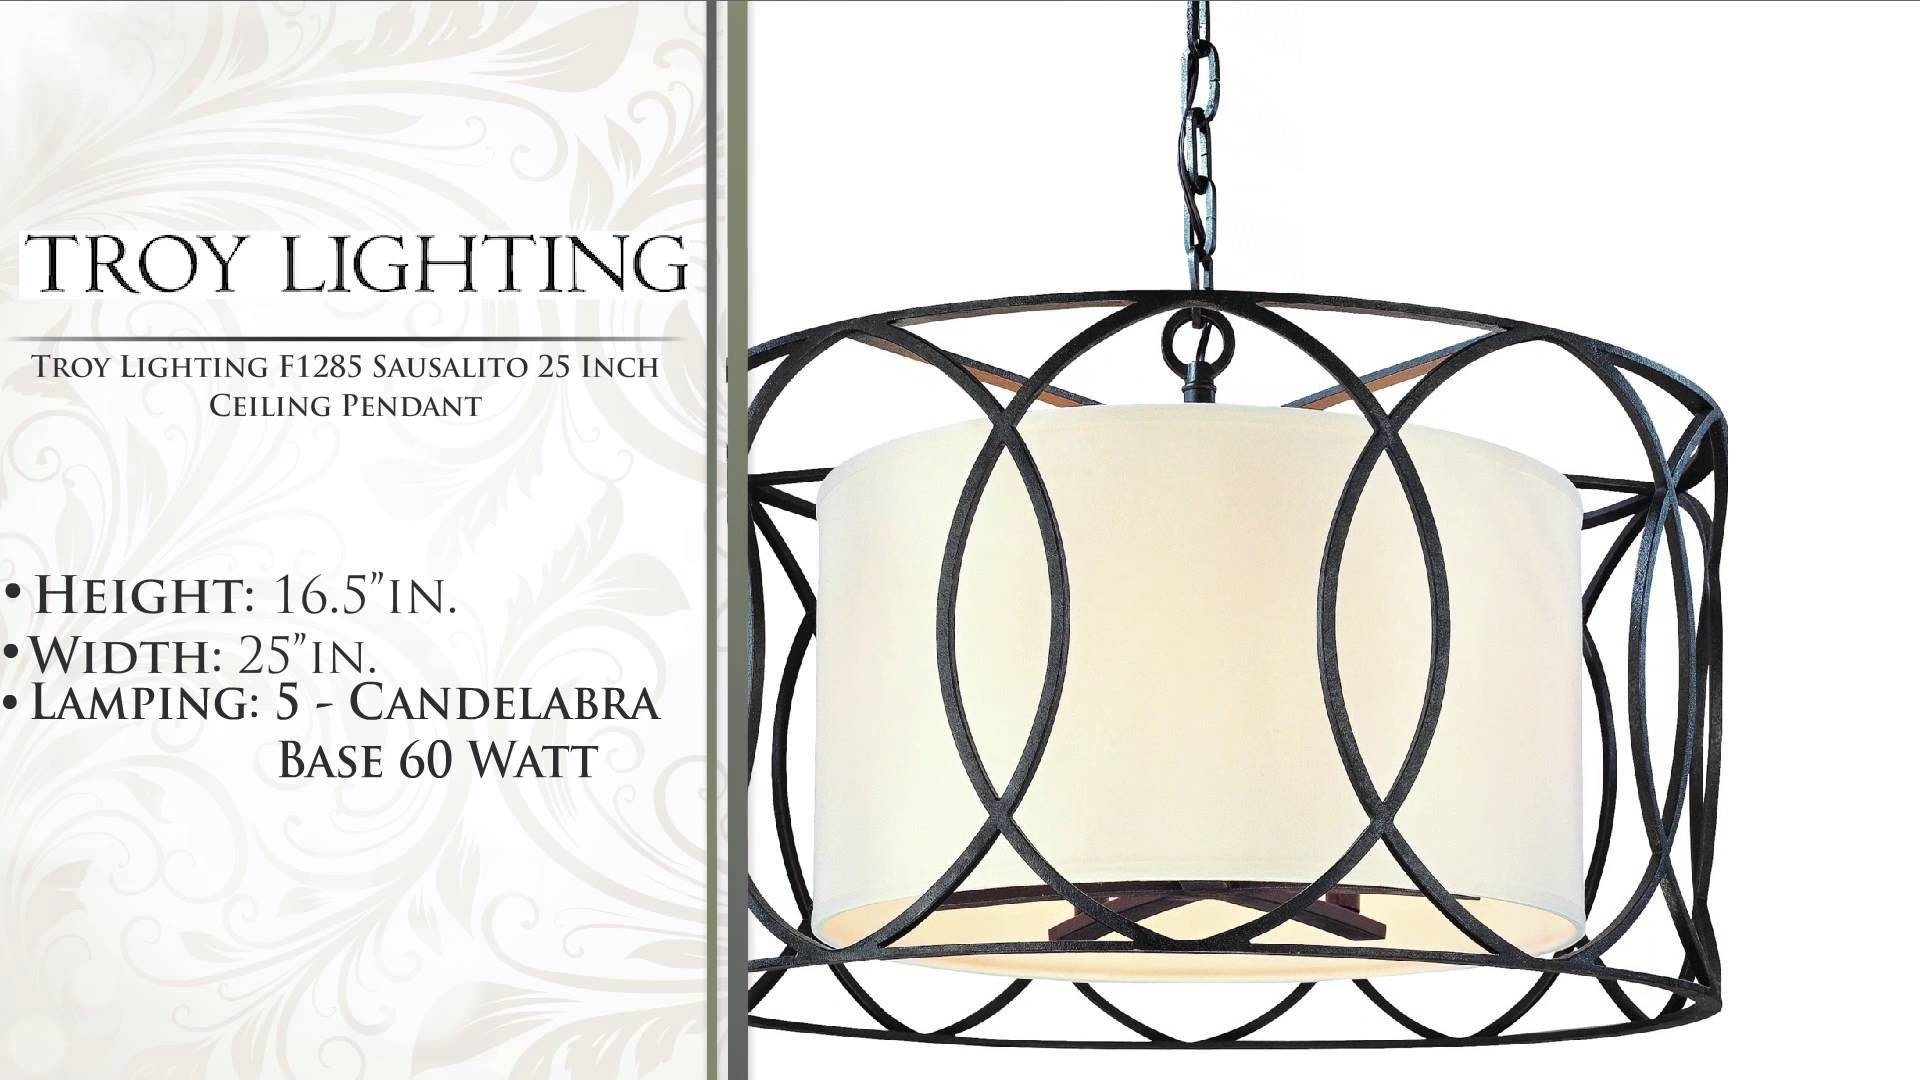 Troy Lighting F1285 Sausalito 25 Inch Ceiling Pendant – Youtube Regarding Sausalito Troy Lighting (View 5 of 15)